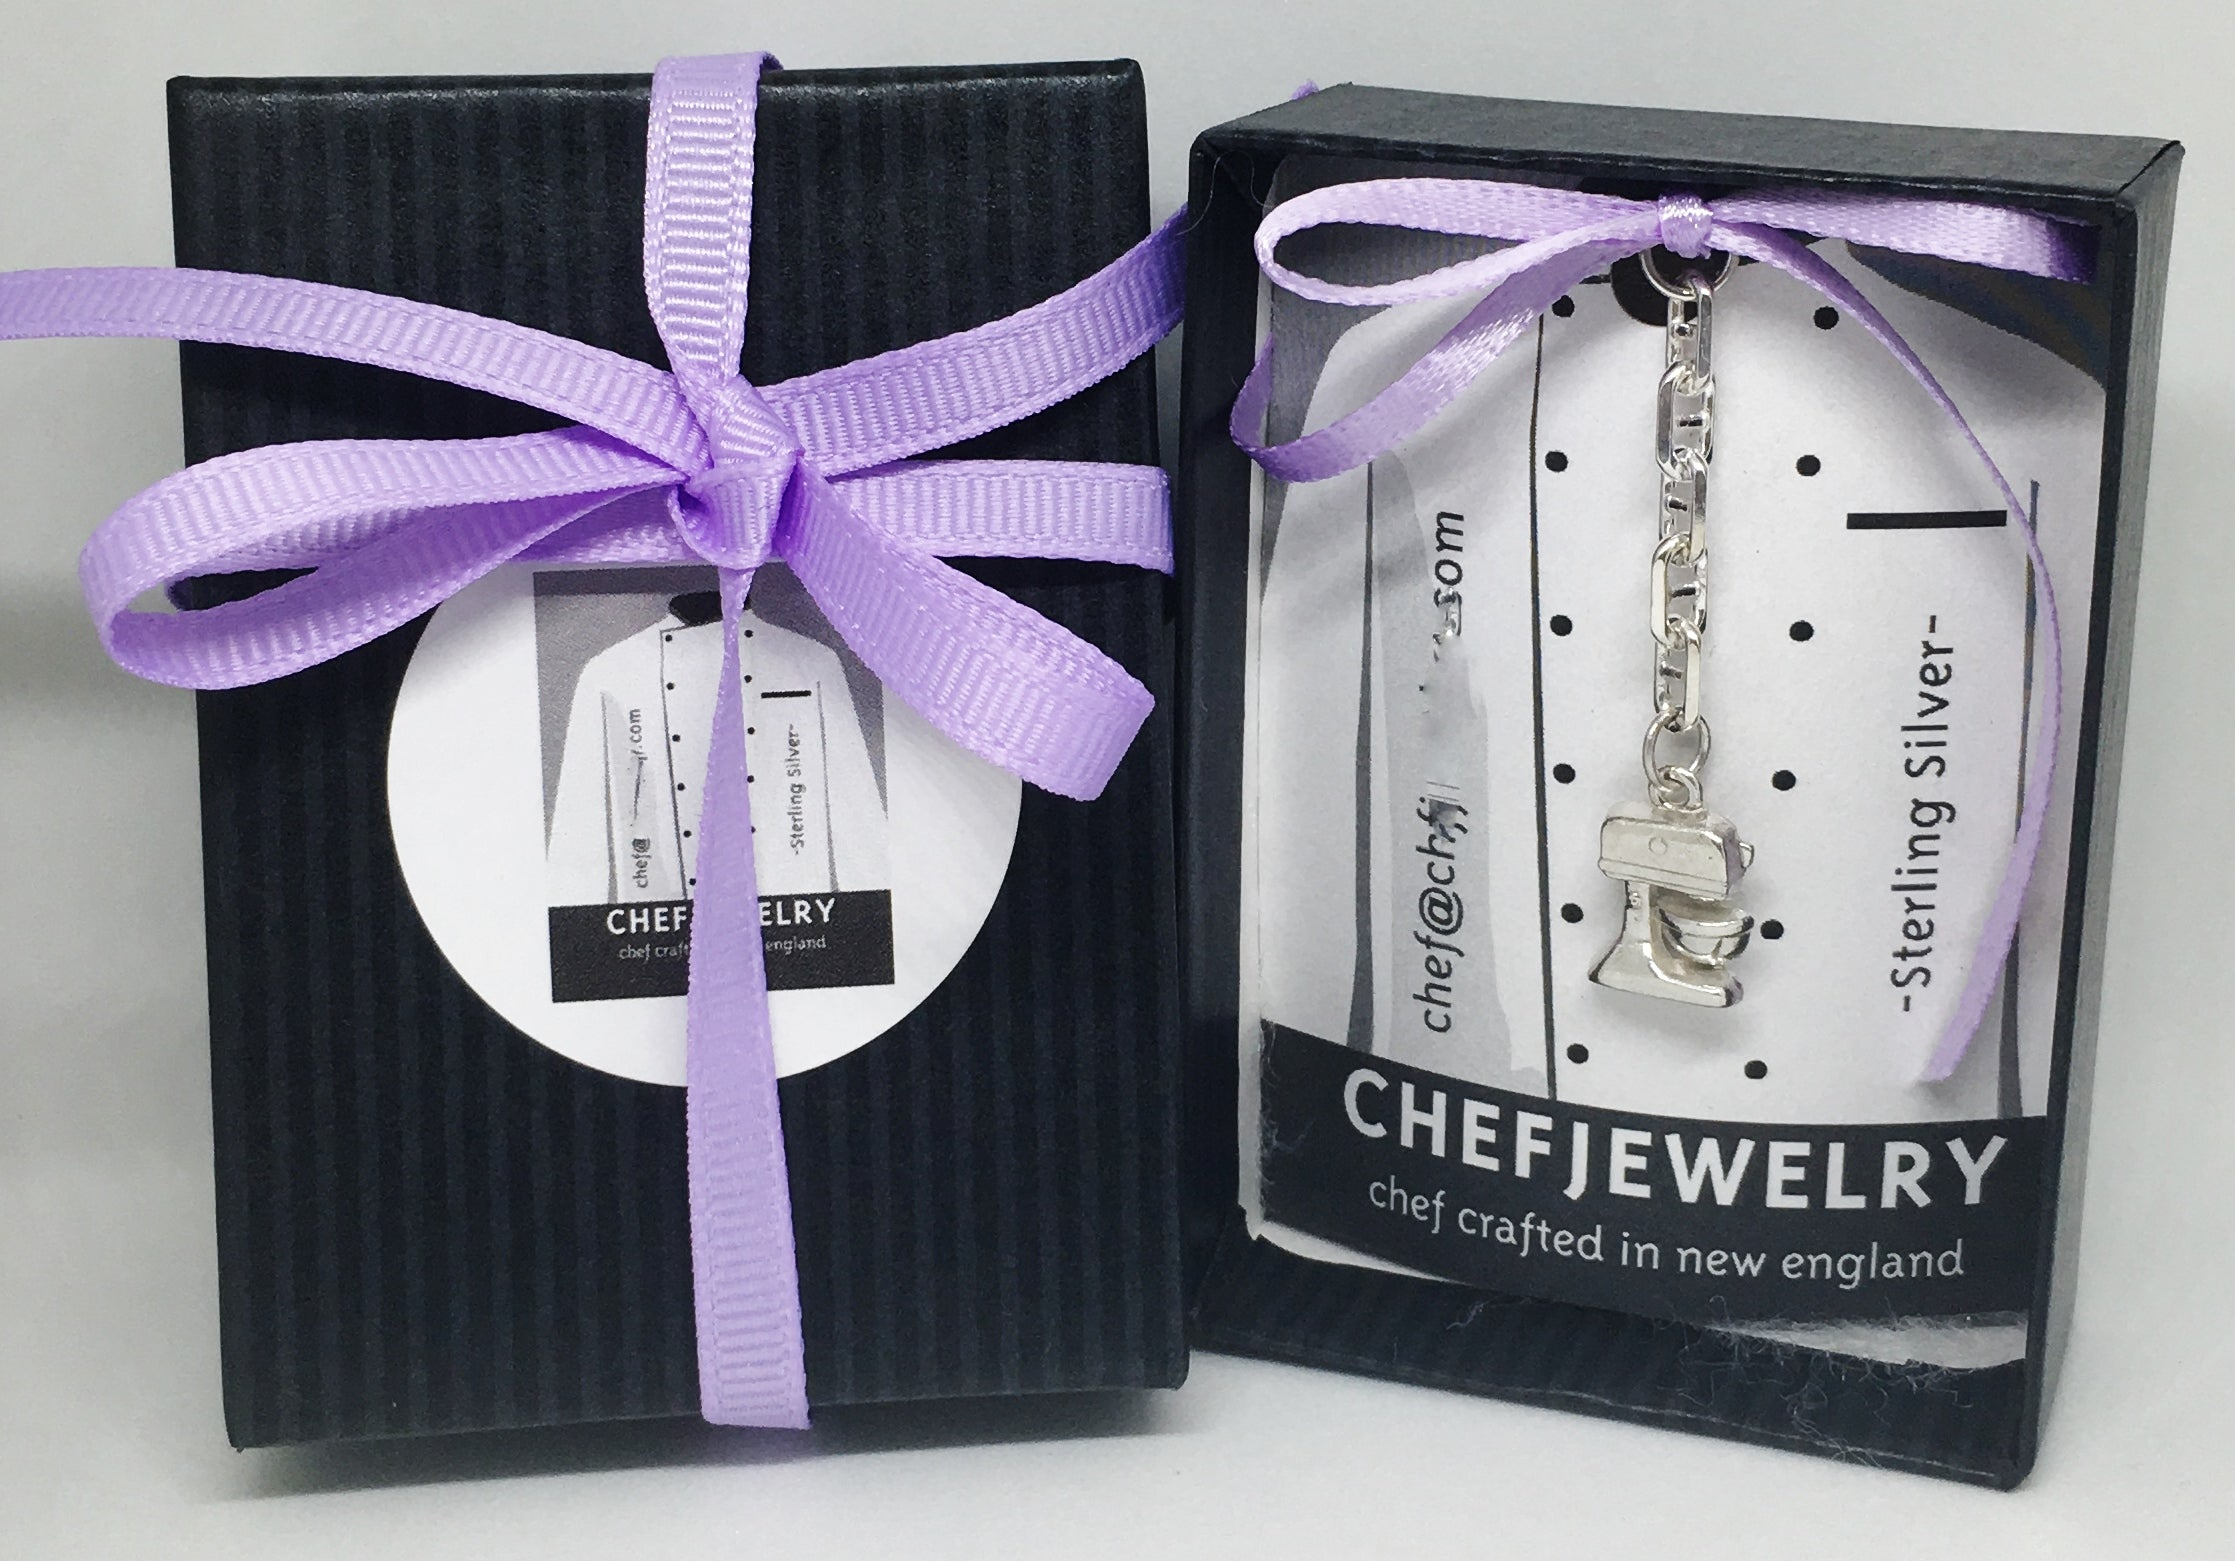 Your chef earring will arrive in custom ChefJewelry packaging